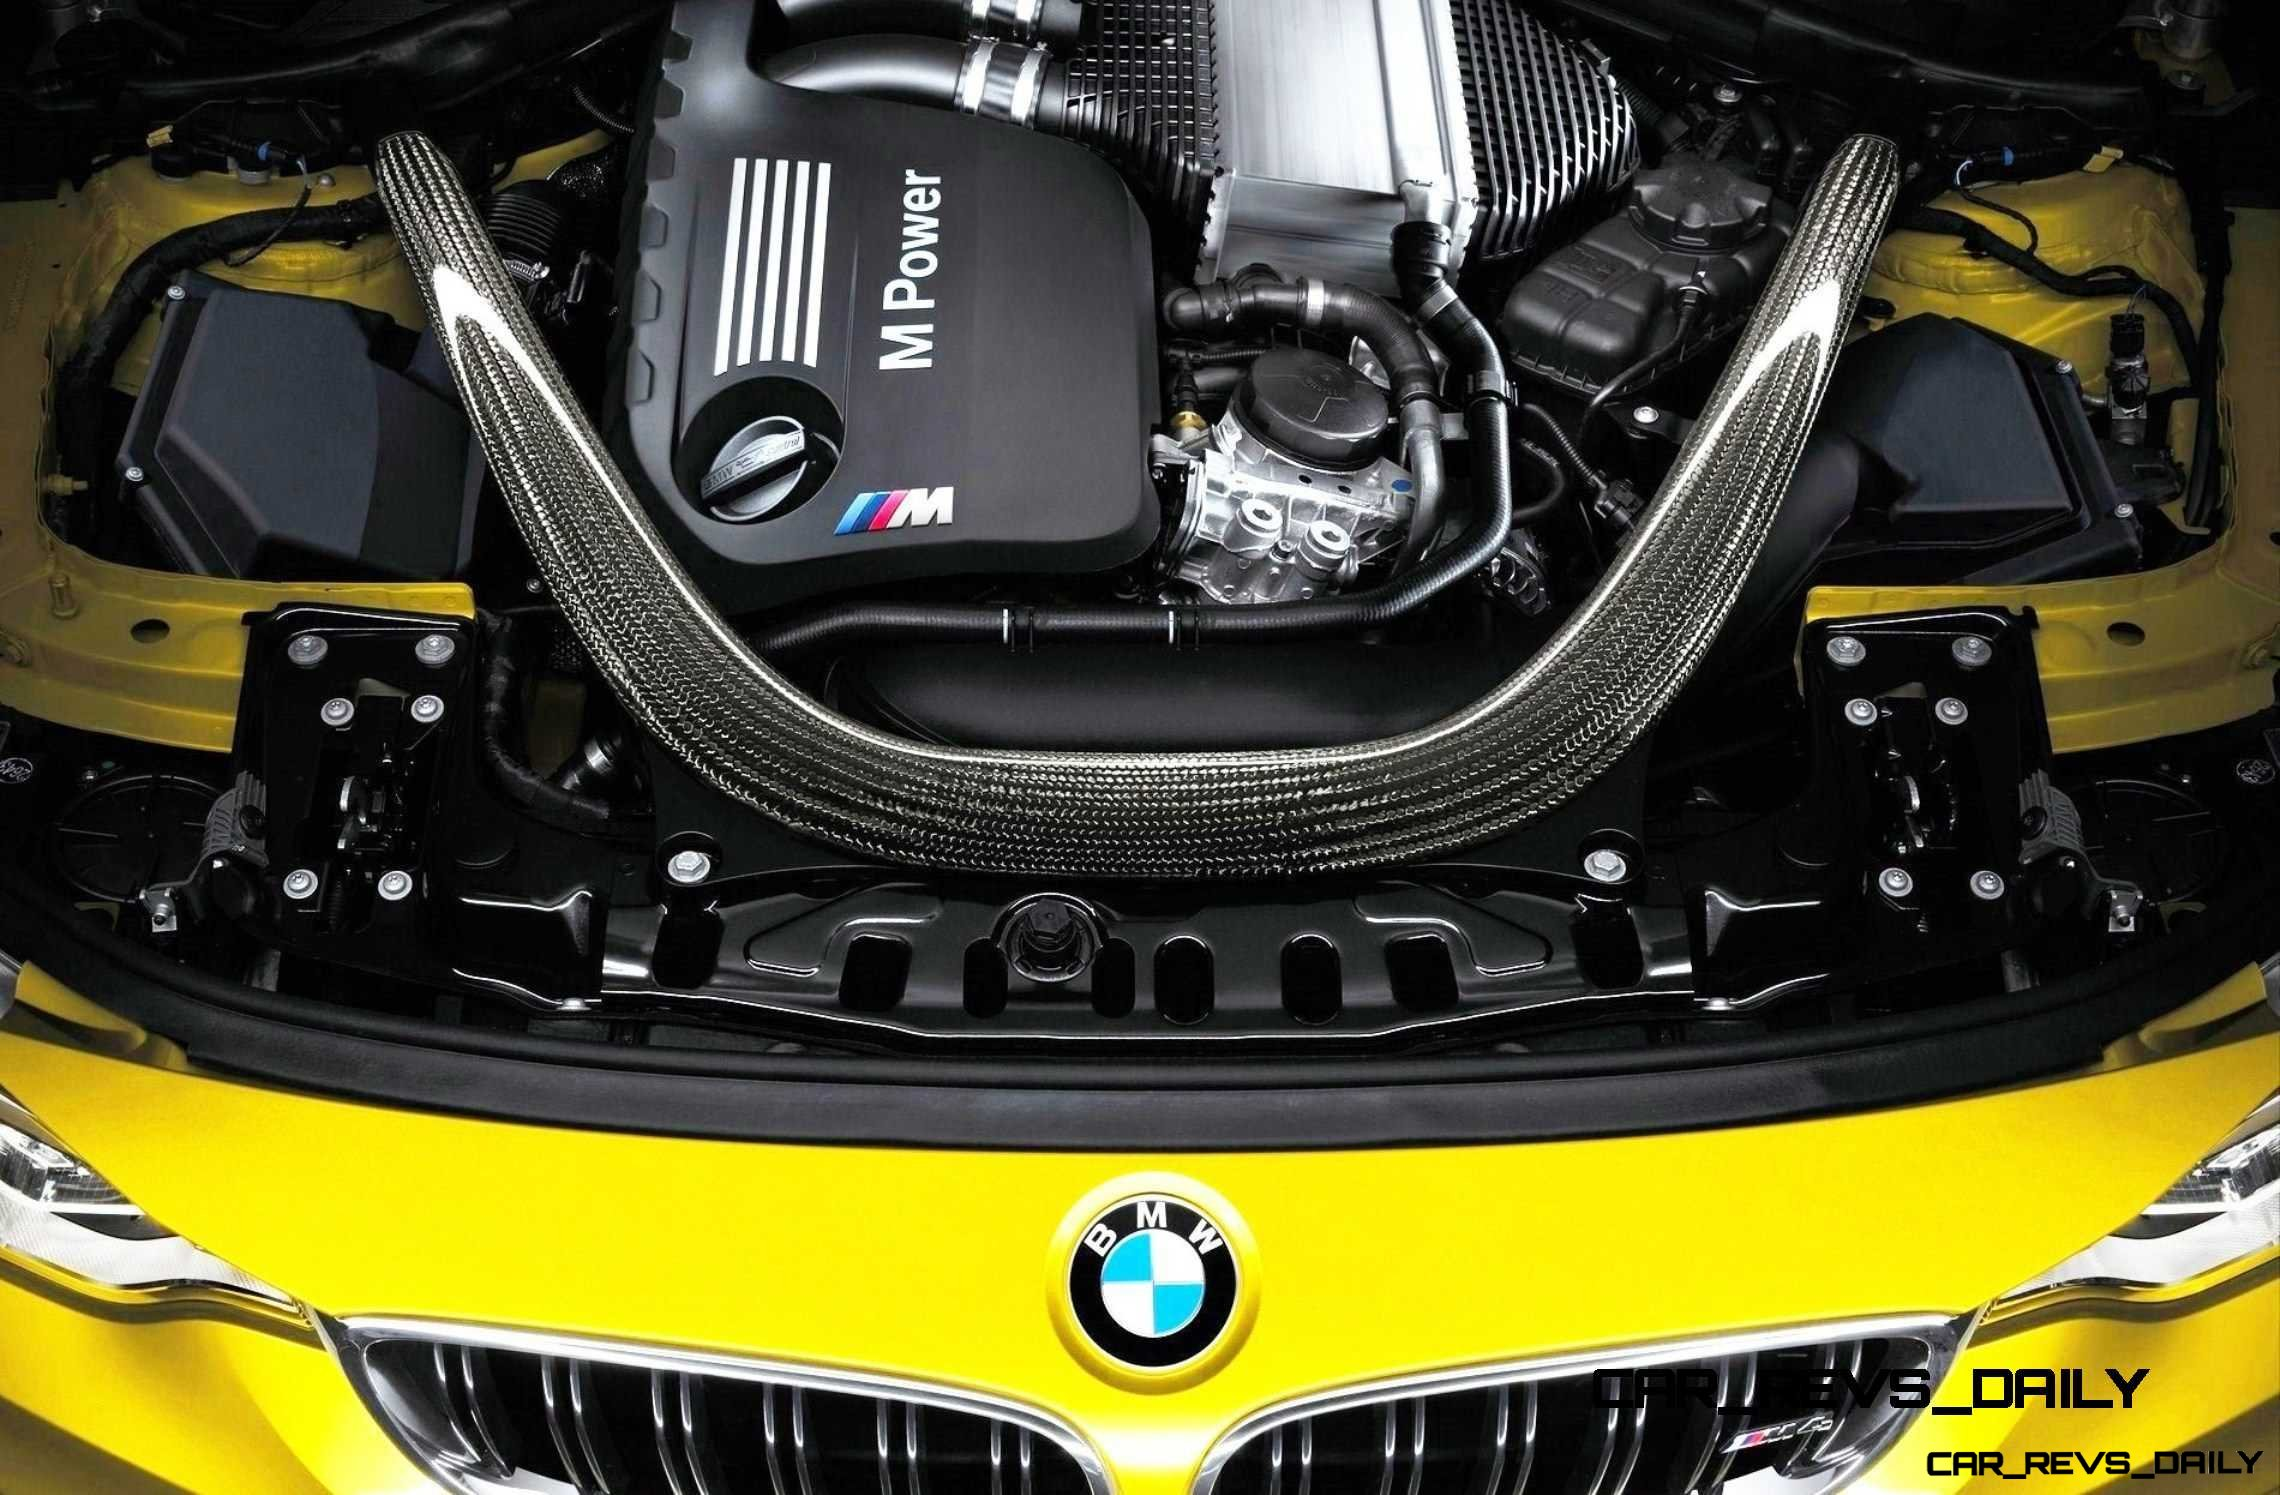 186mph 2014 BMW M4 Screams into Focus 40